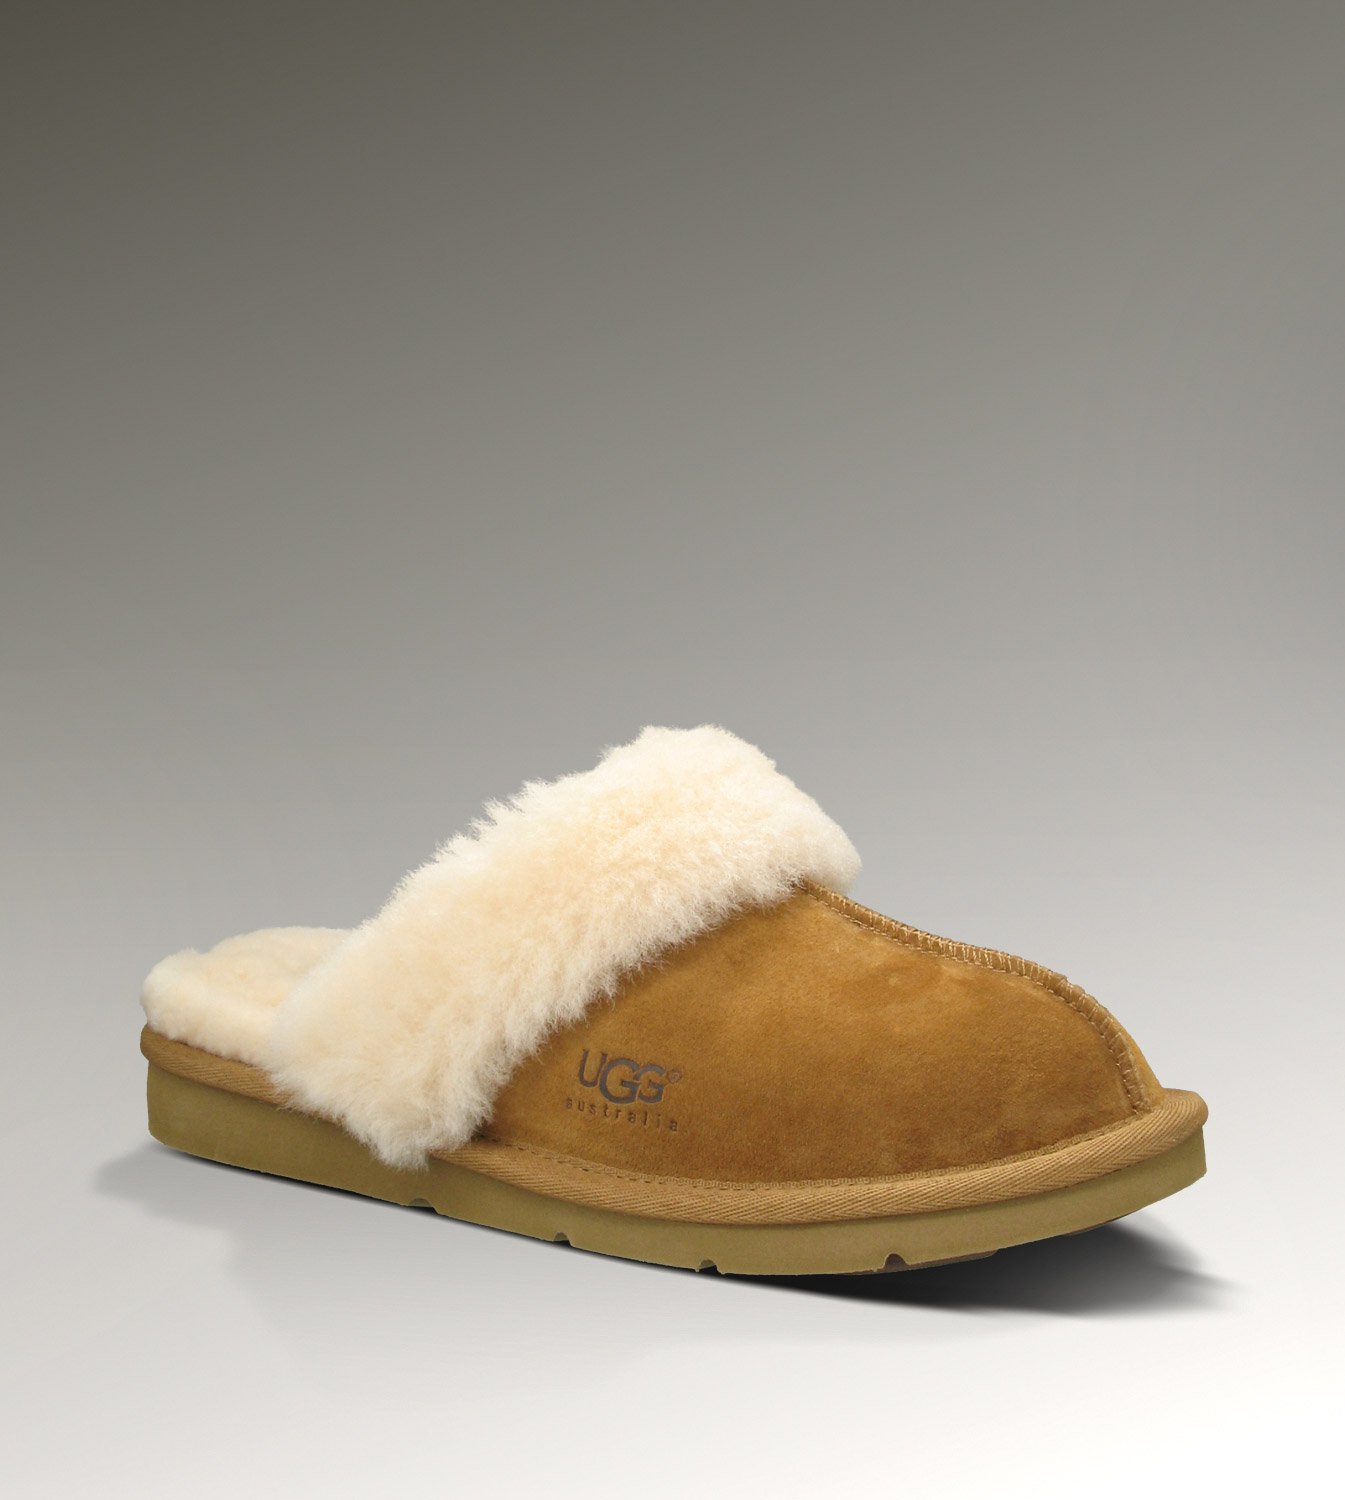 ugg slippers sale uk